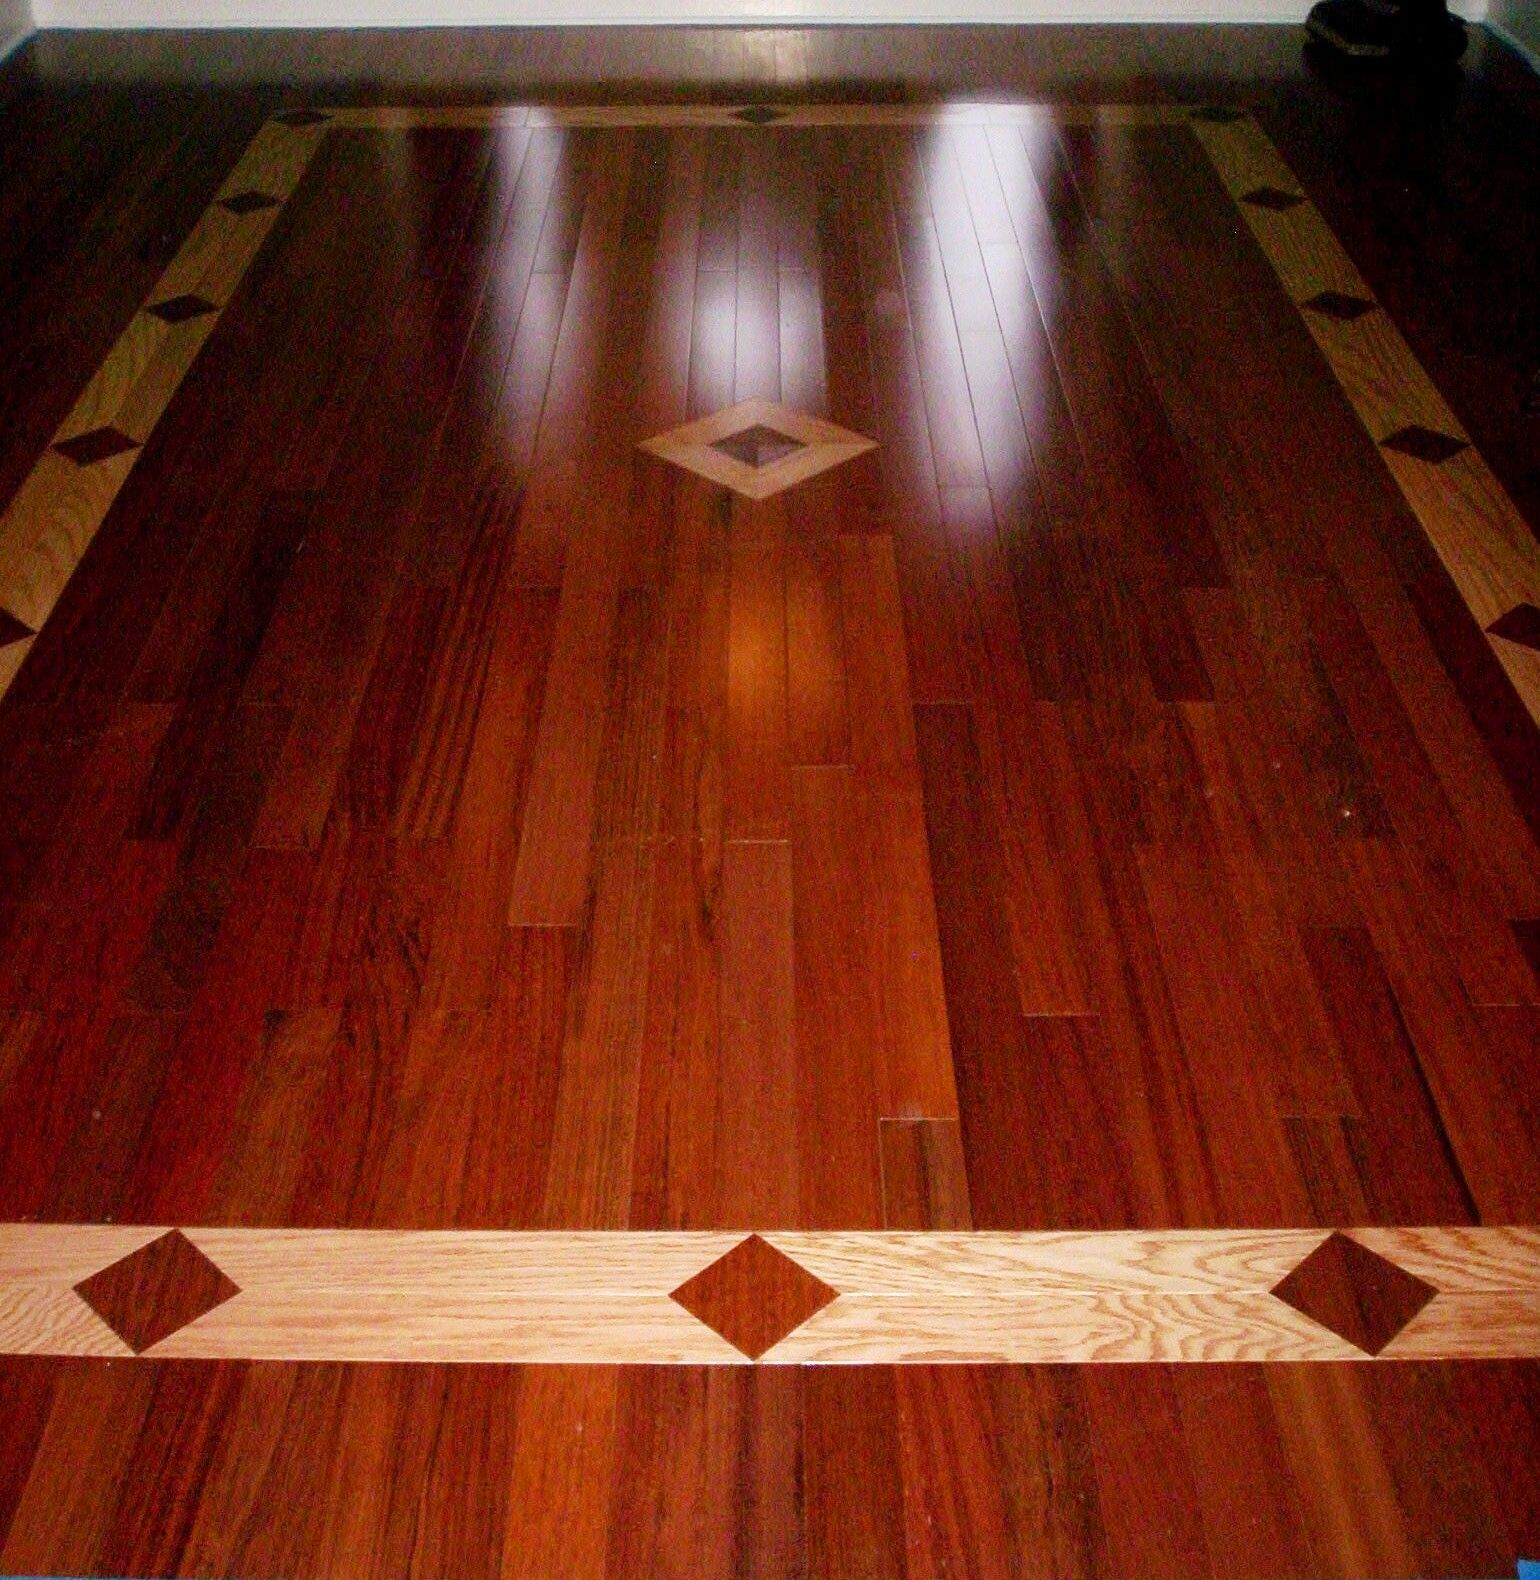 Brazilian cherry hardwood floor with a red oak inlay for Hardwood floor ideas pictures